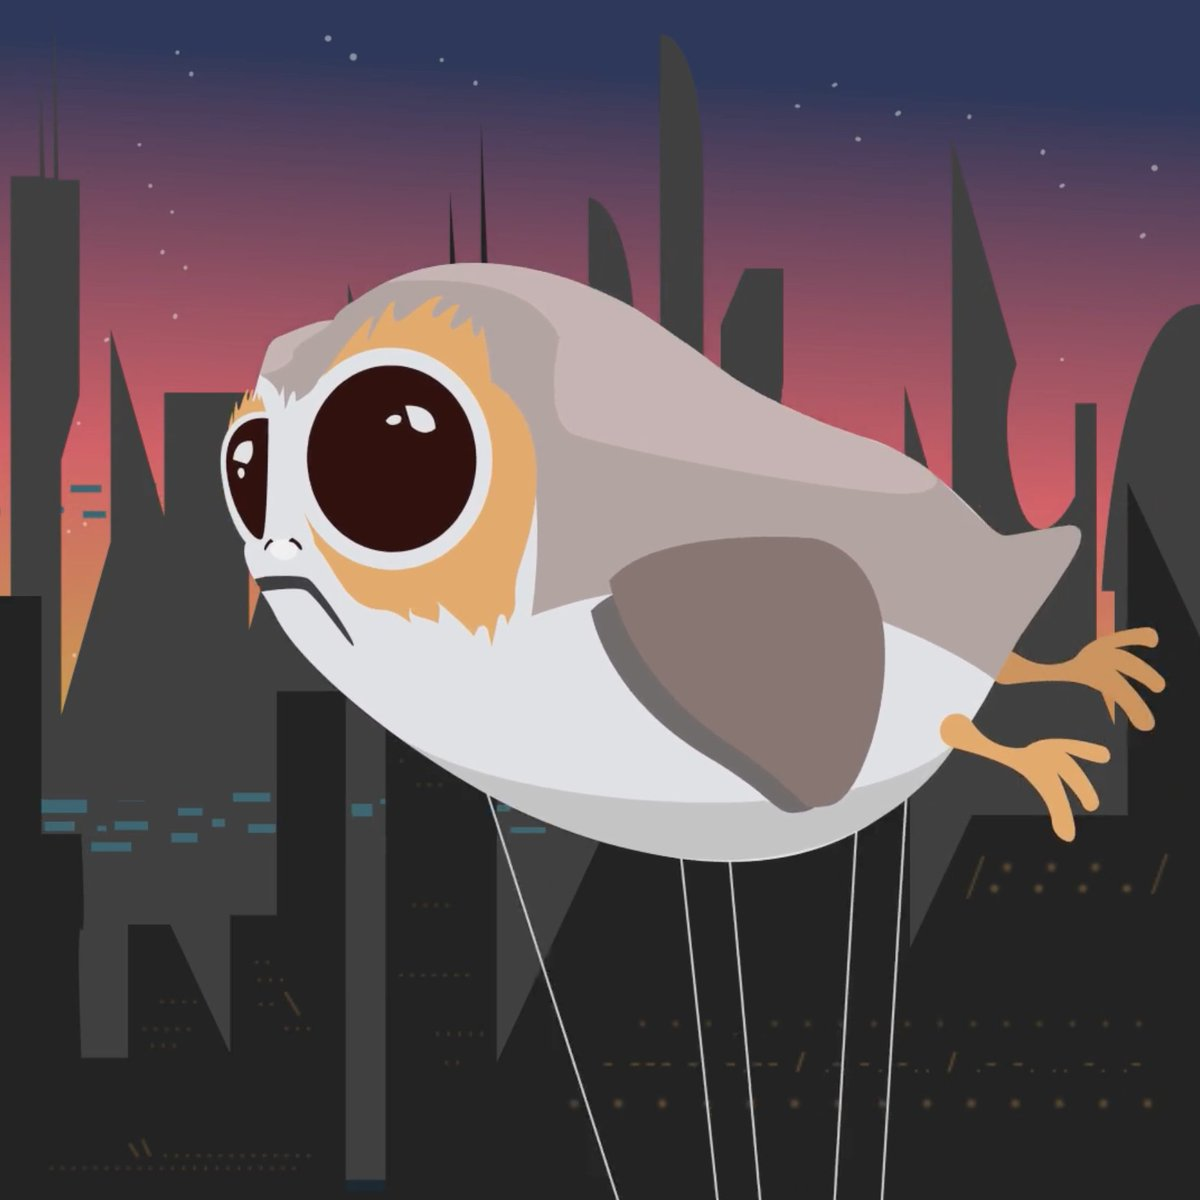 May the Porg be with you this Thanksgiving. 💫 @StarWars #TheLastJedi is in theaters December 15.